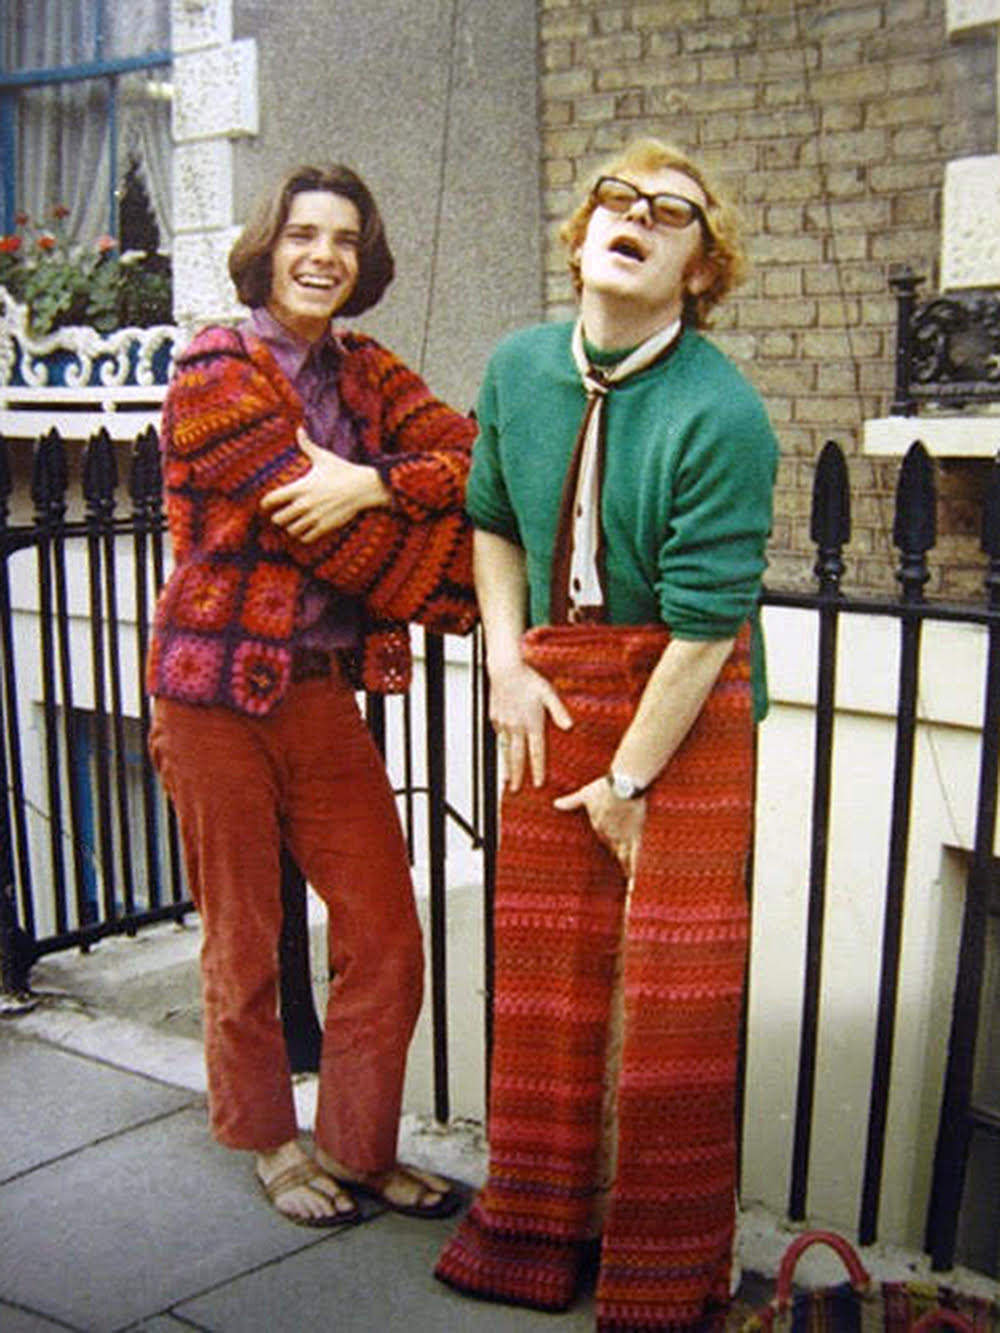 Jan Öqvist in 1968, wearing Bjerke's Clapton jacket, with Vern Lambert, one of the owners of the Chelsea Antique Market store where Bjerke worked.